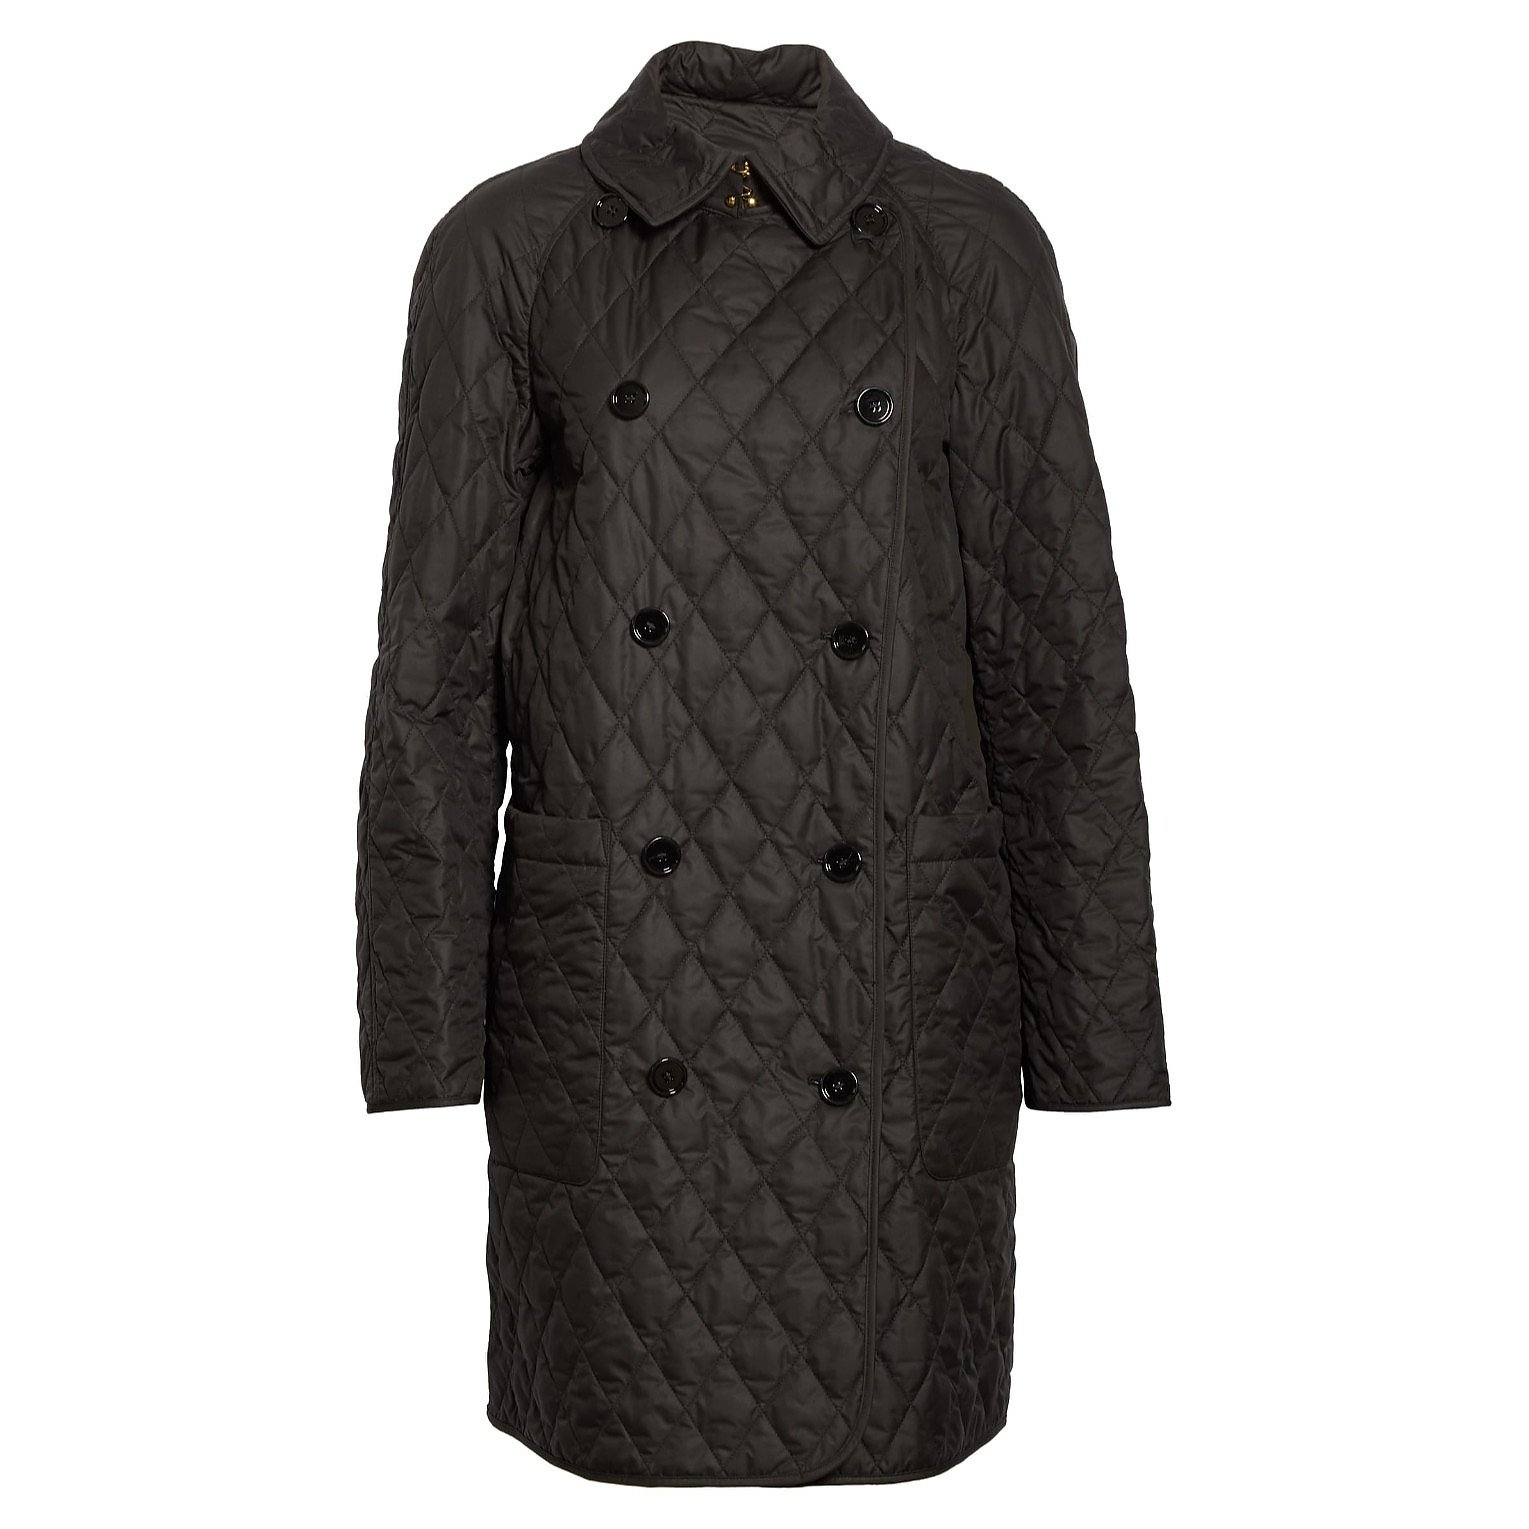 Burberry Quilted Double Breasted Coat